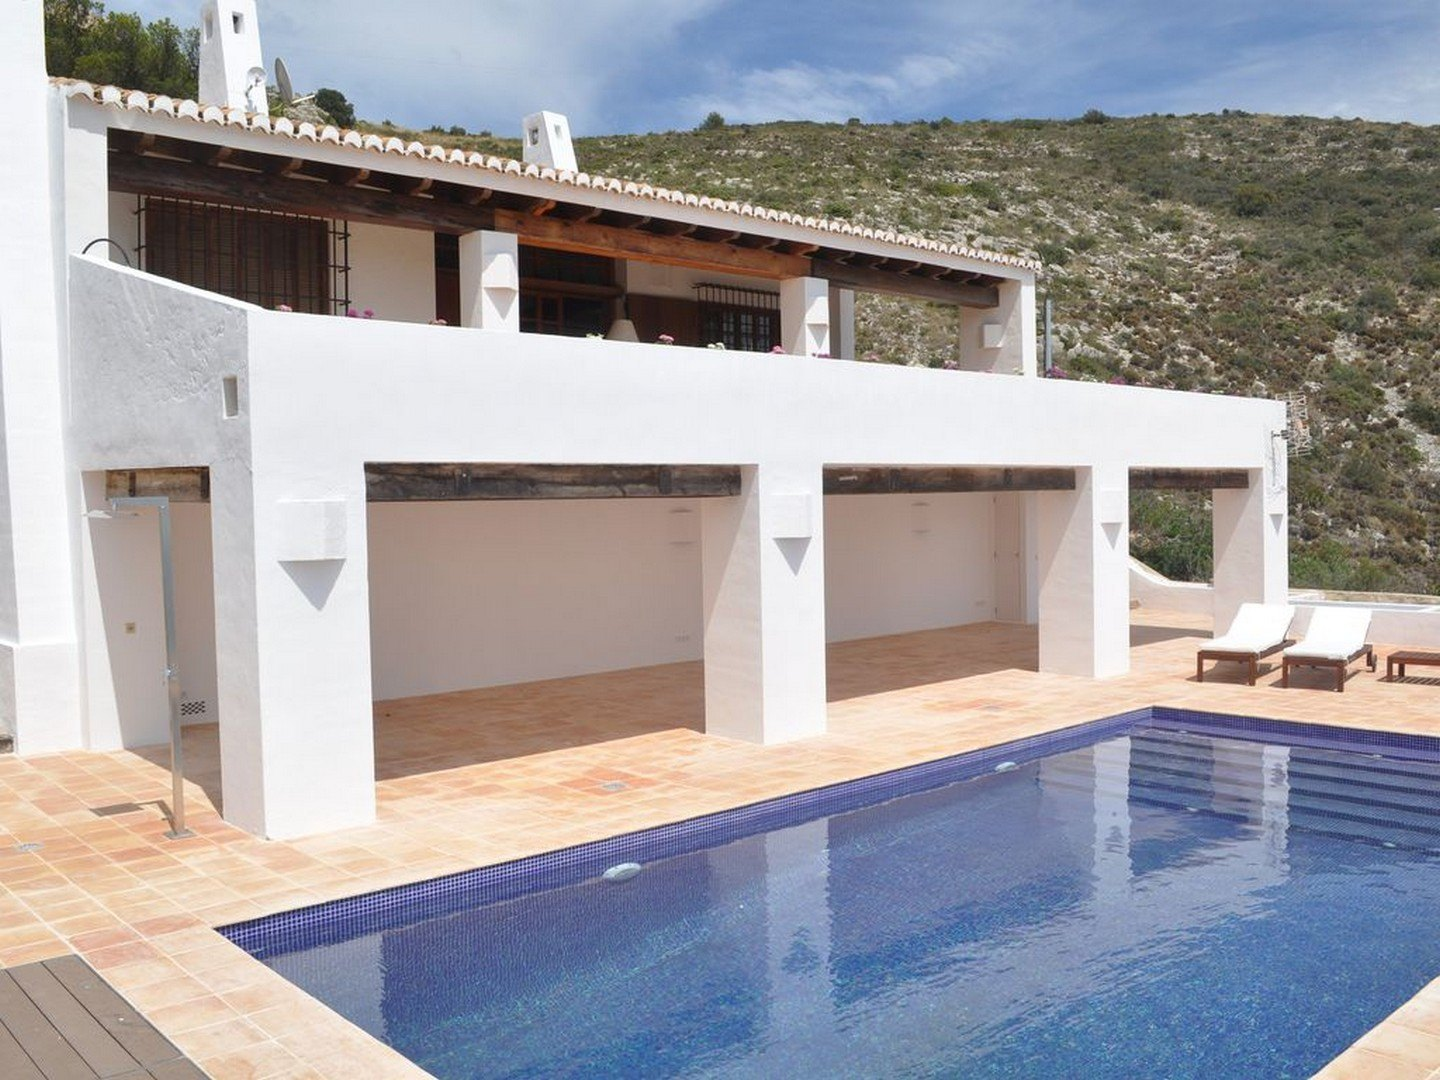 Fotogalería - 4 - Build a villa in Moraira: villas for sale in Moraira